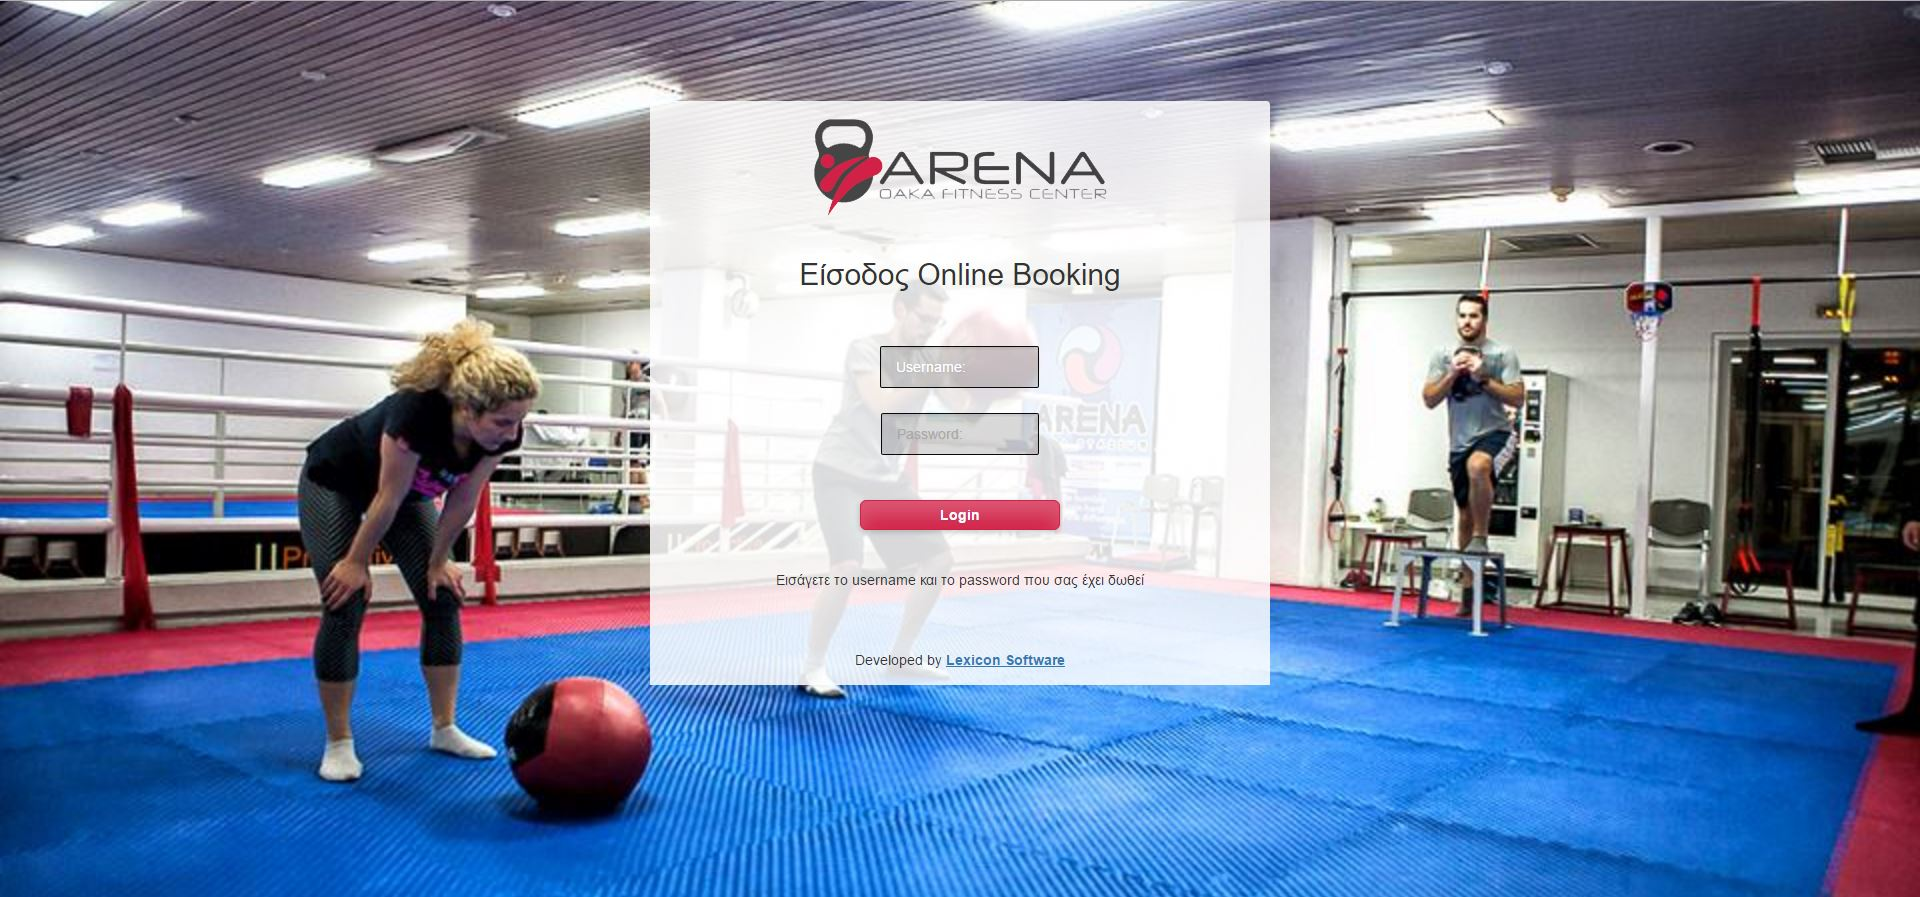 arena-oaka online booking